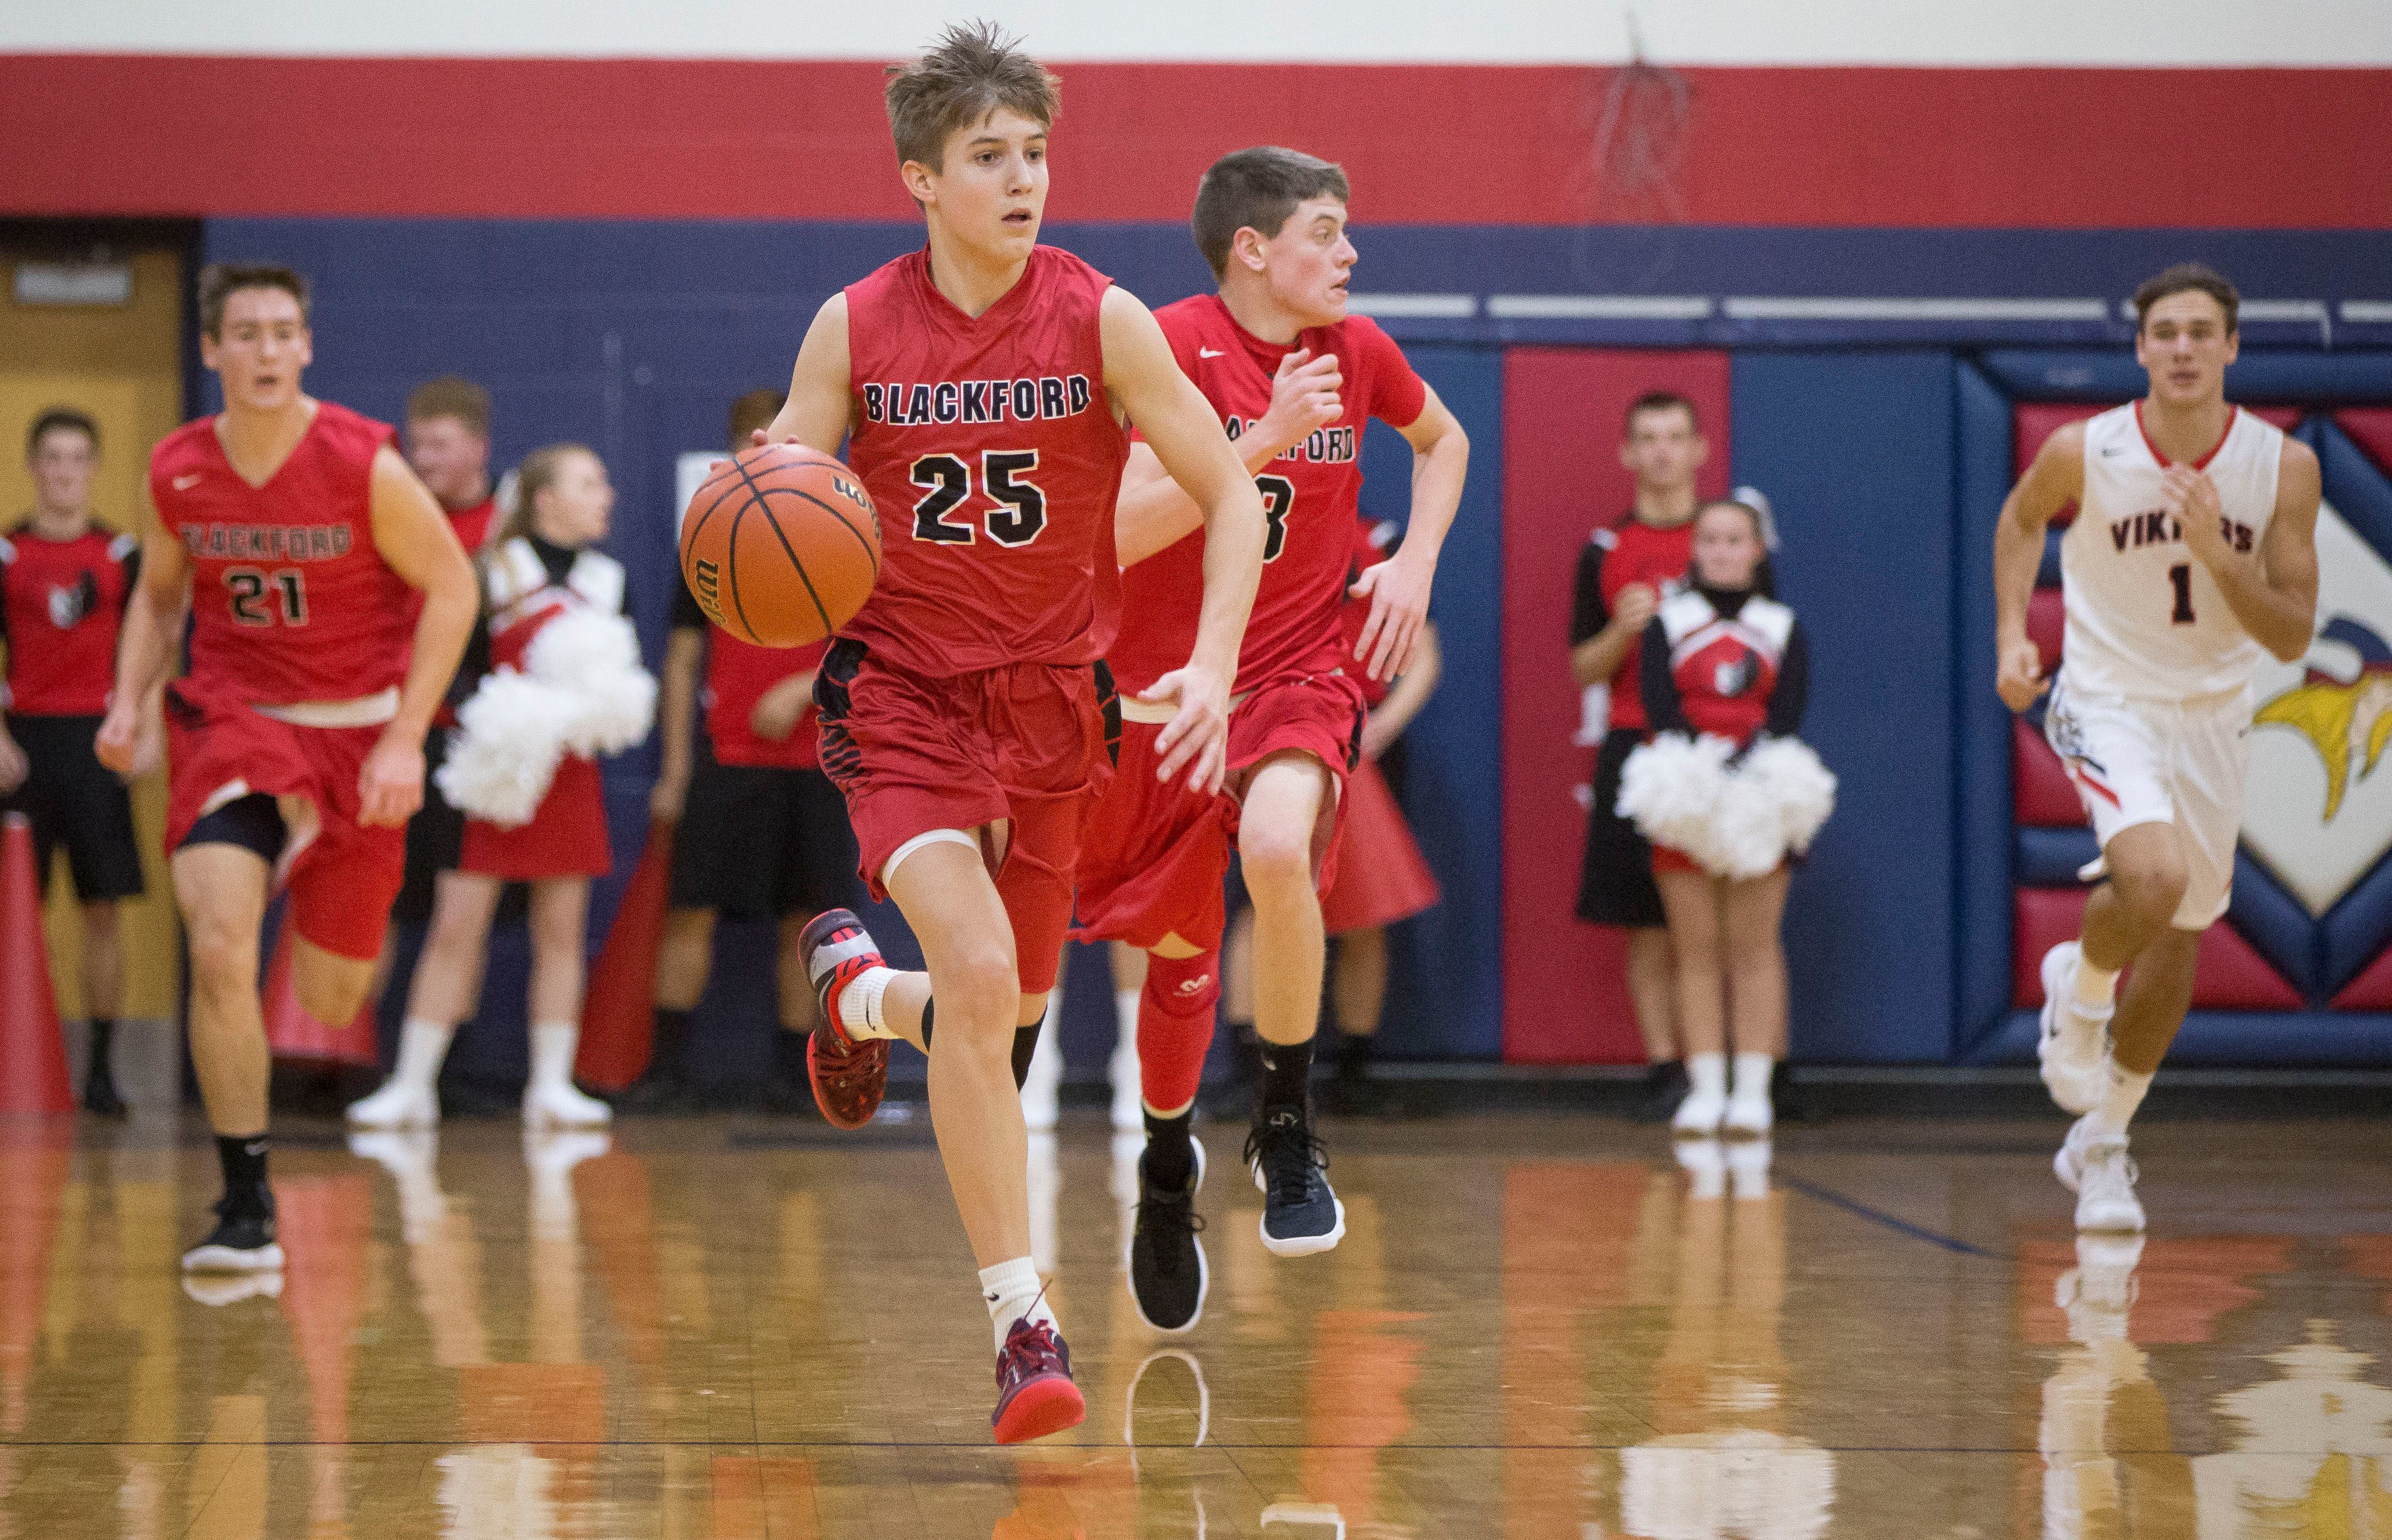 Blackford's Luke Brown takes the ball down court on Dec. 2 during their game against Blue River. Blackford won the game 79-64.